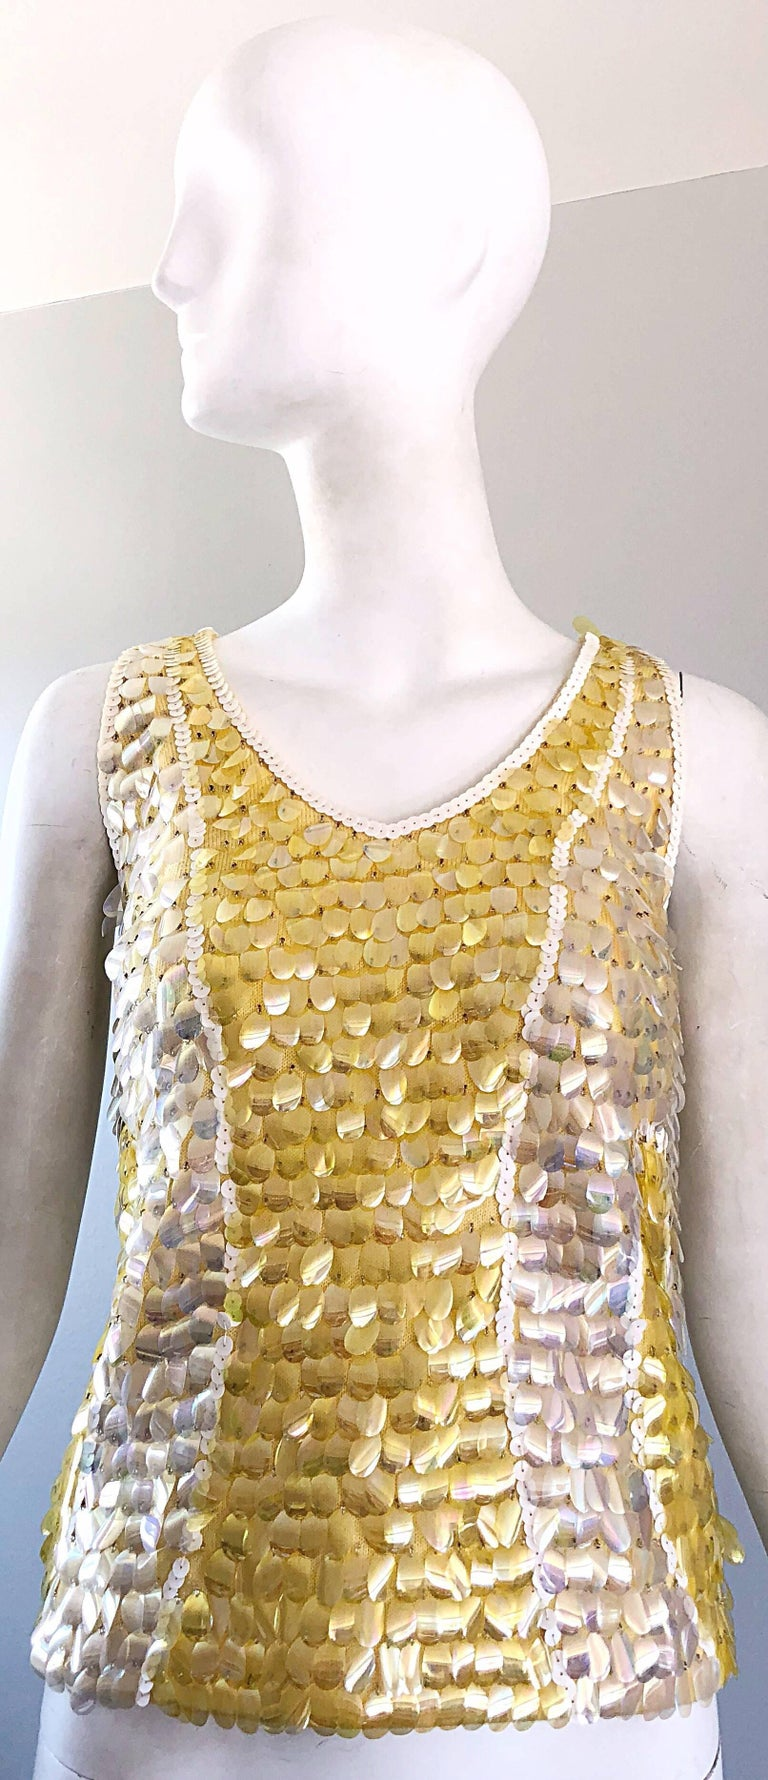 1960s Yellow + White + Clear Paillettes Sequined Lamb's Wool Sleeveless 60s Top For Sale 10